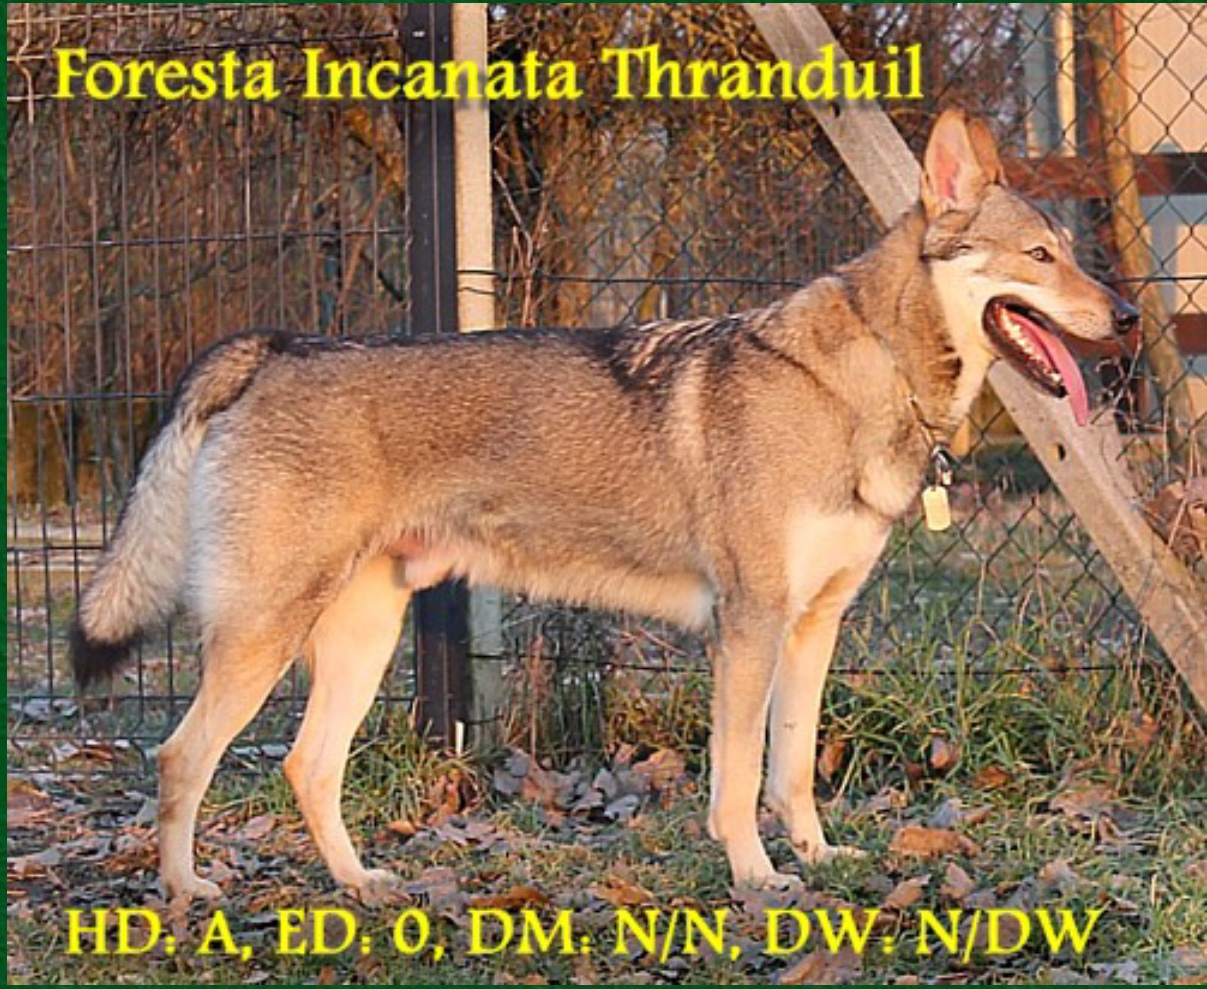 FORESTA INCANTATA THRANDUIL